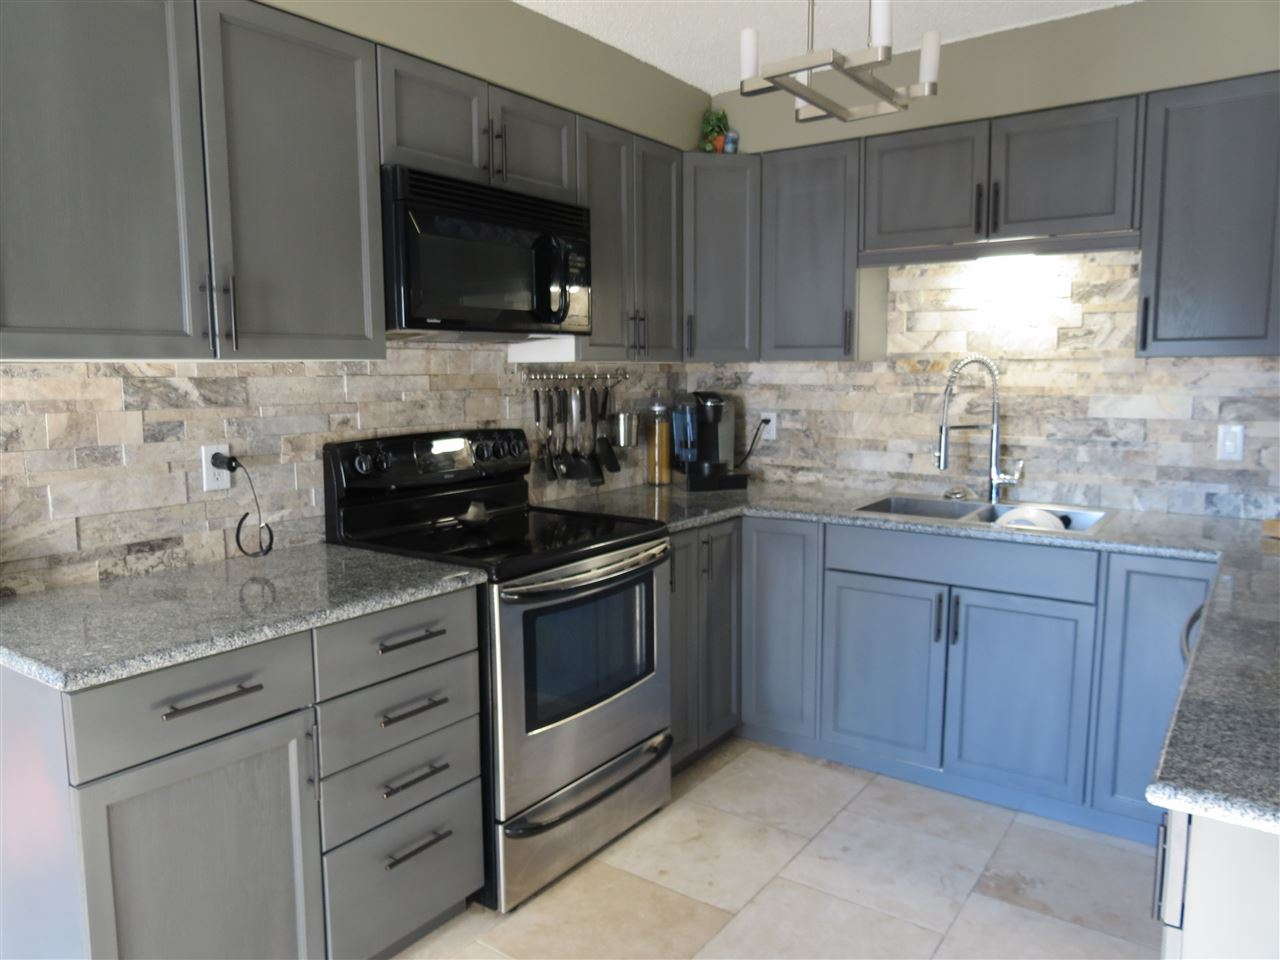 Photo 7: 69 Prospect Place: Cardiff House for sale : MLS(r) # E4059588